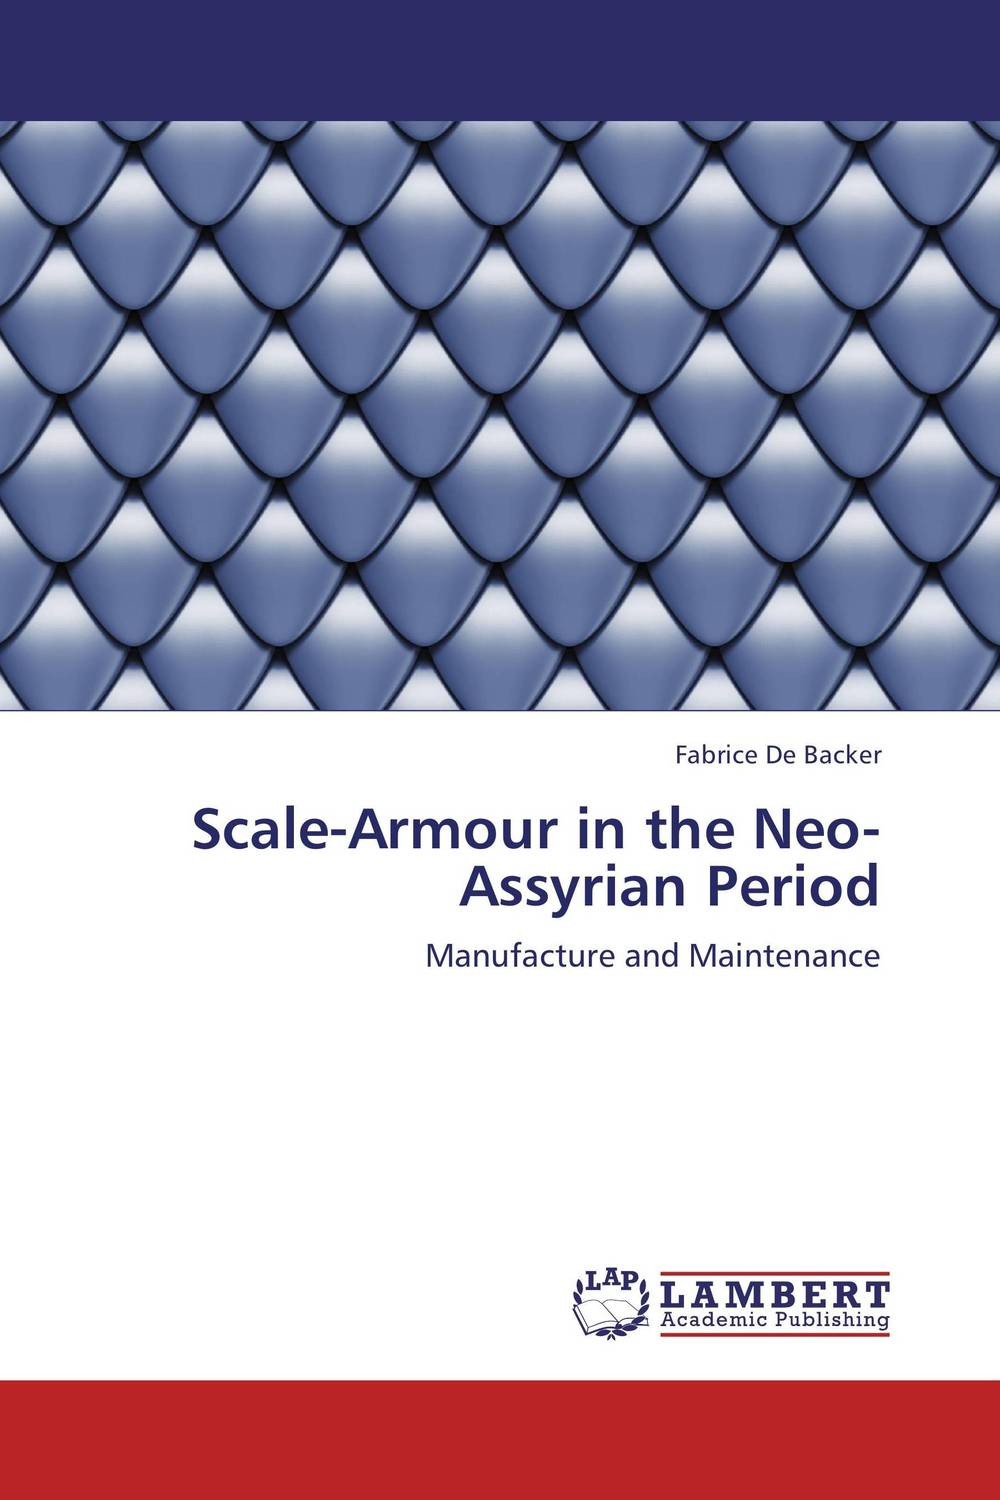 Scale-Armour in the Neo-Assyrian Period брюки спортивные under armour under armour un001emtvo69